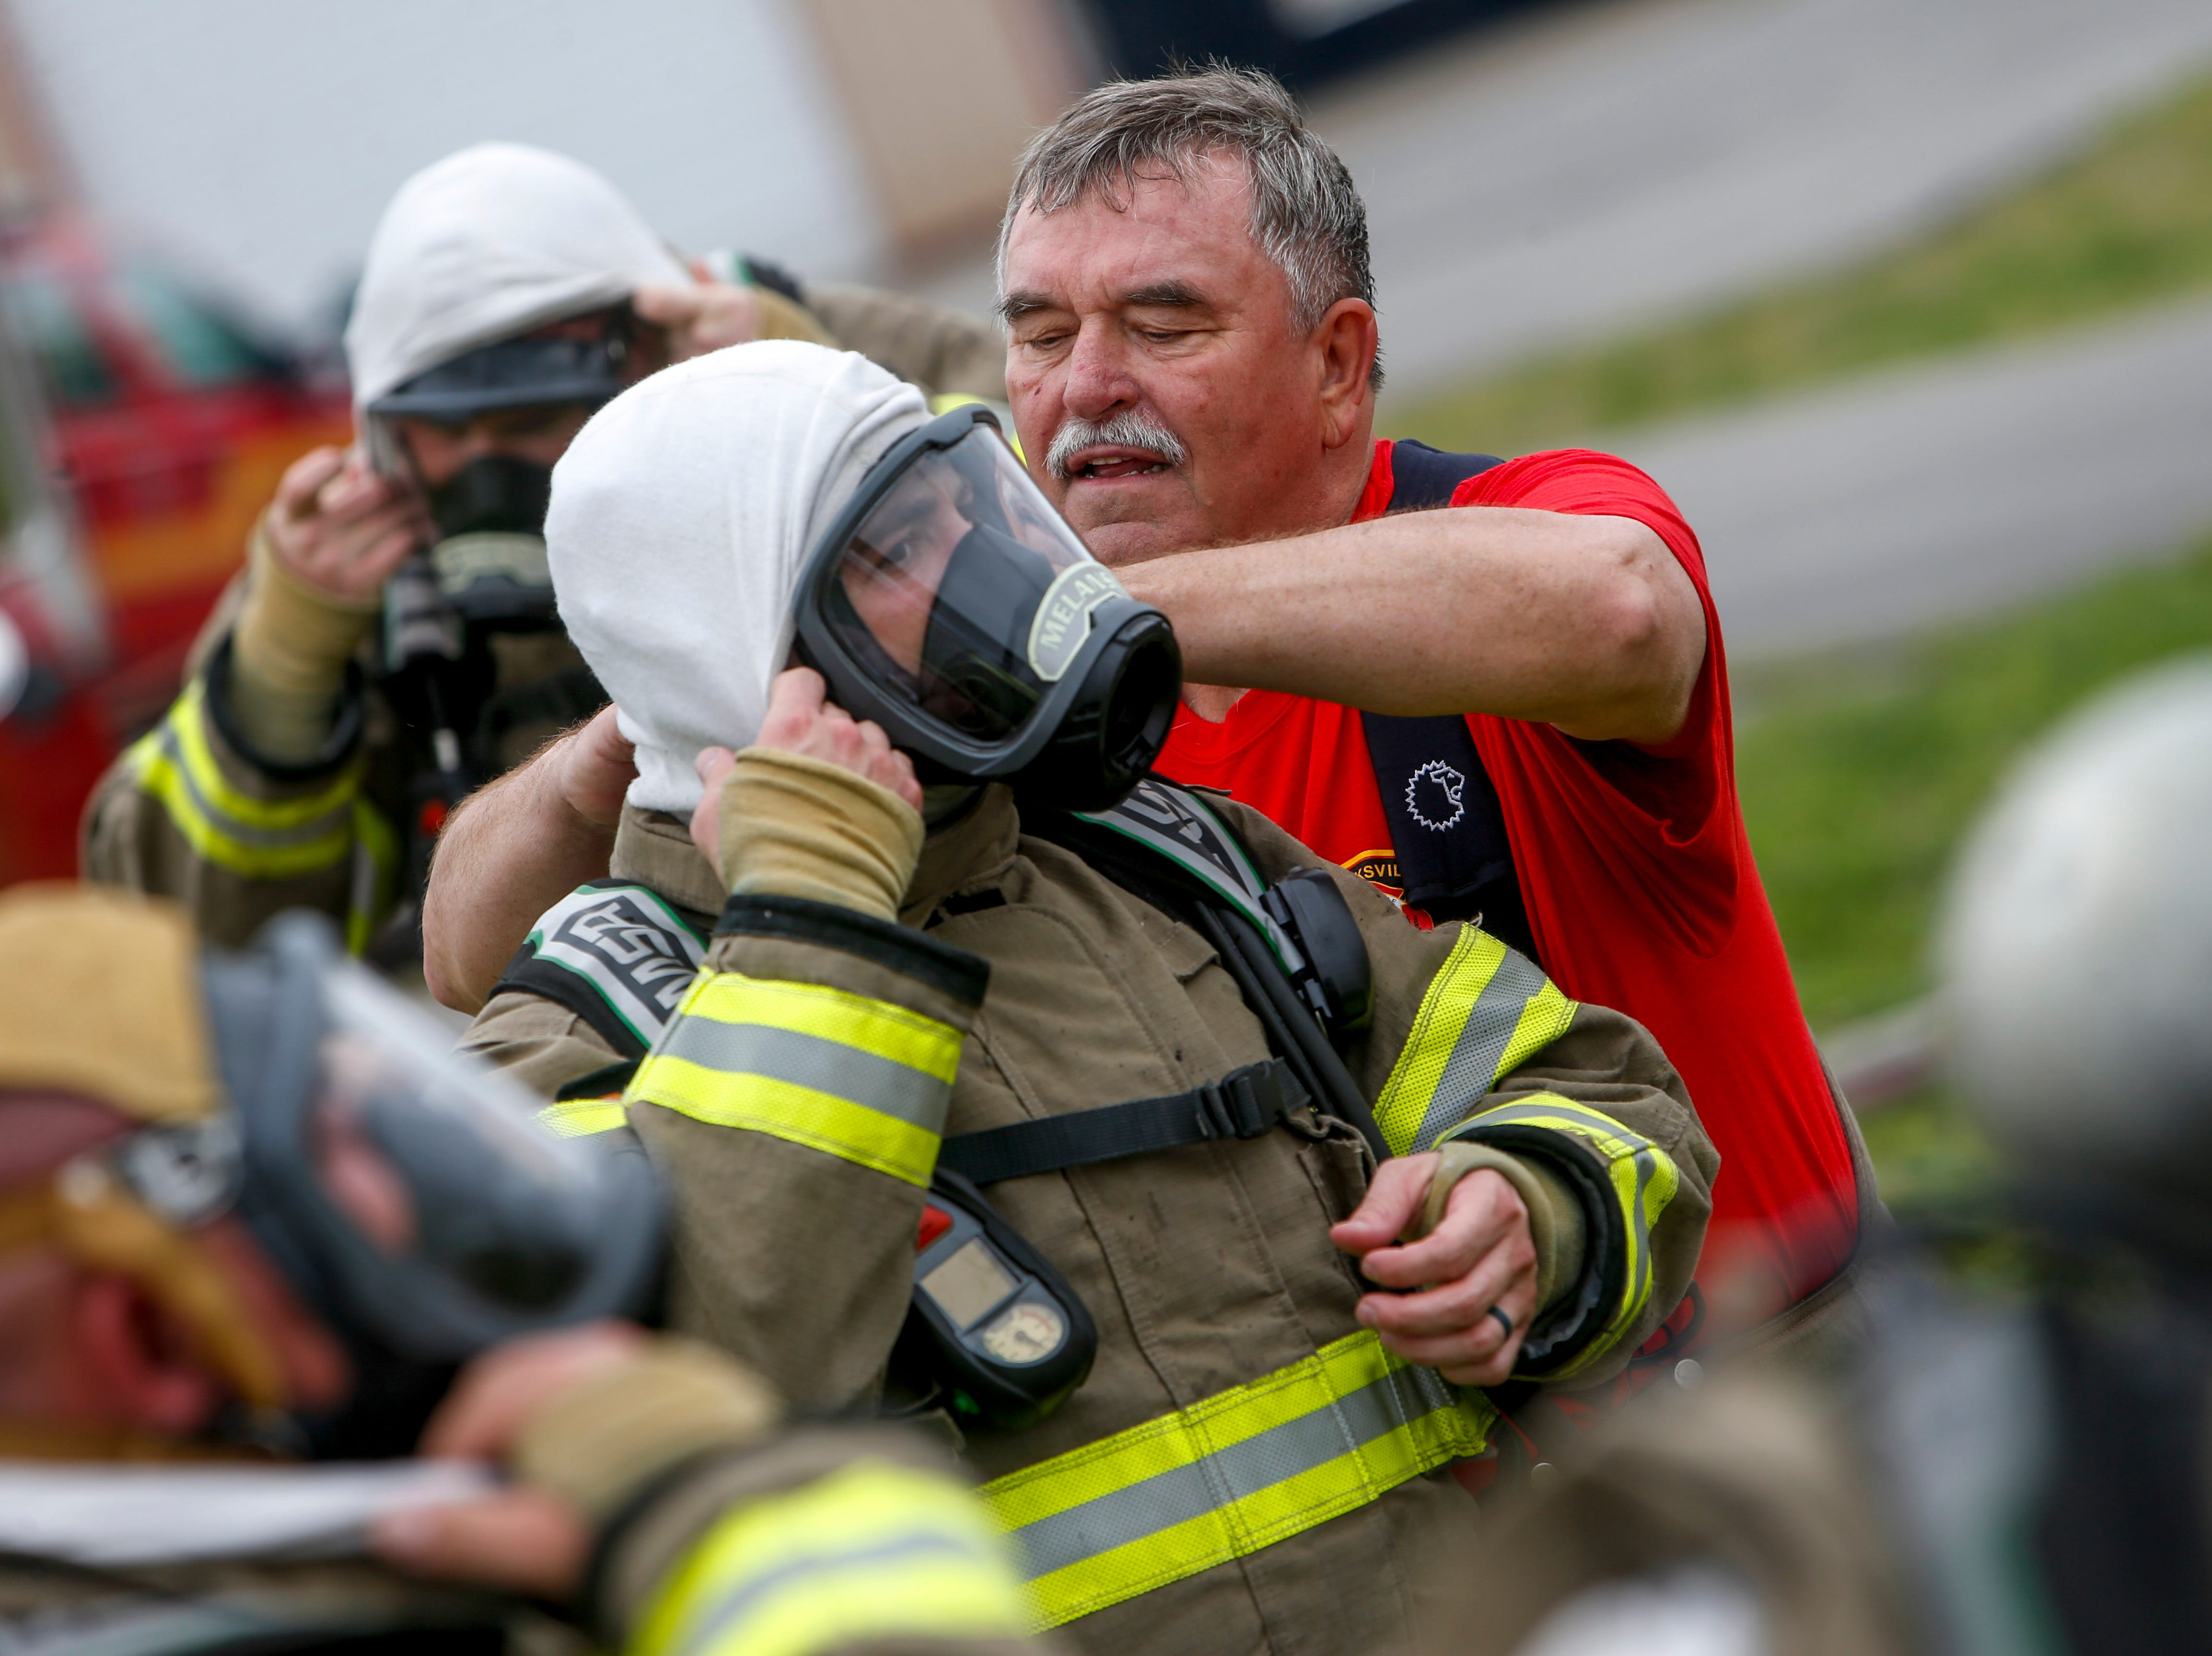 Chief Mike Roberts helps Bobby Melanson remove his mask during a live fire drill at Clarksville Fire Rescue on Friday, May 10, 2019. After 42 years with the department, Roberts will retire effective July 31.